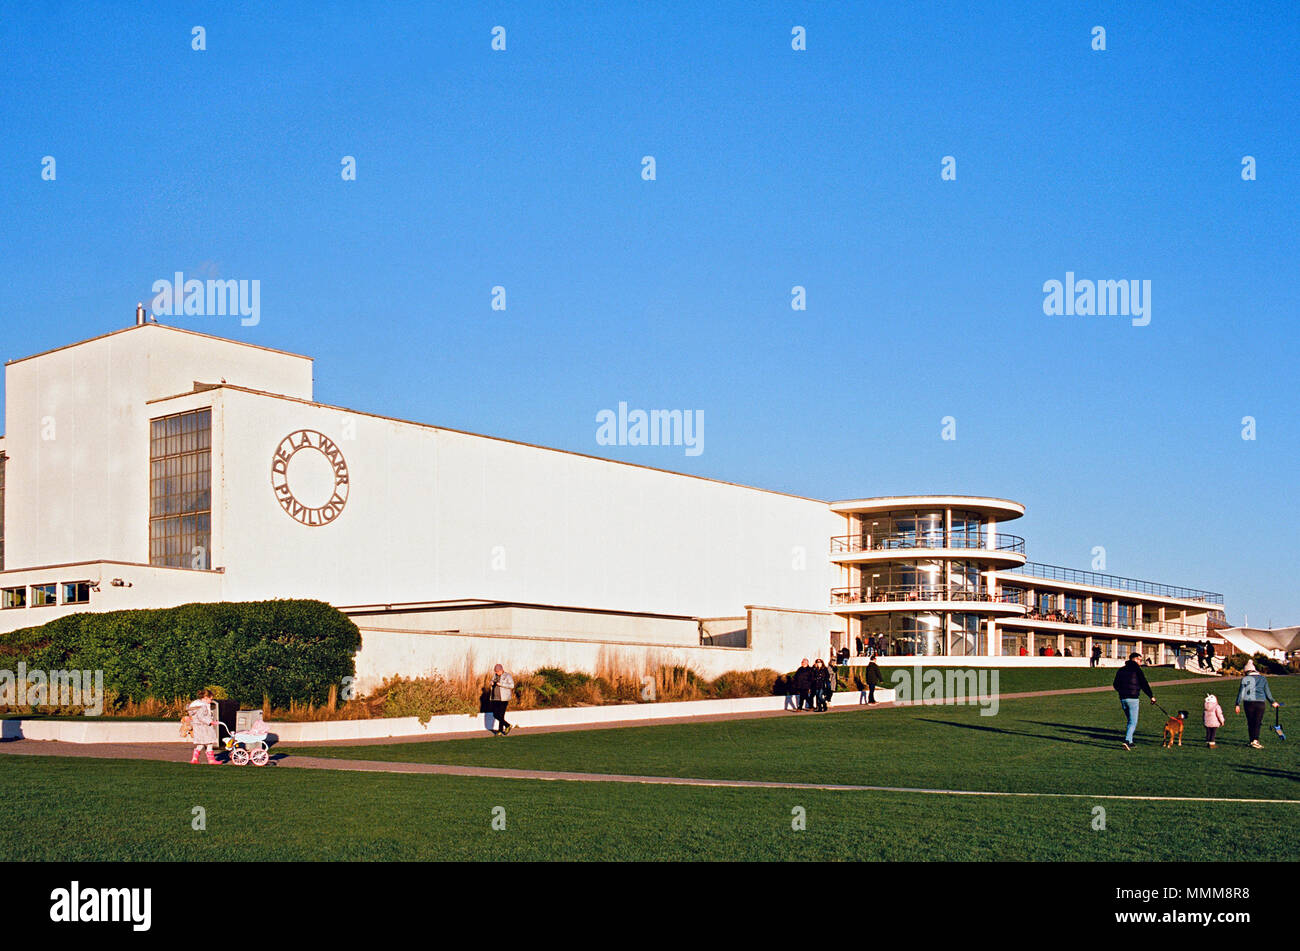 The De La Warr Pavilion on the seafront at Bexhill-On-Sea, East Sussex, UK - Stock Image